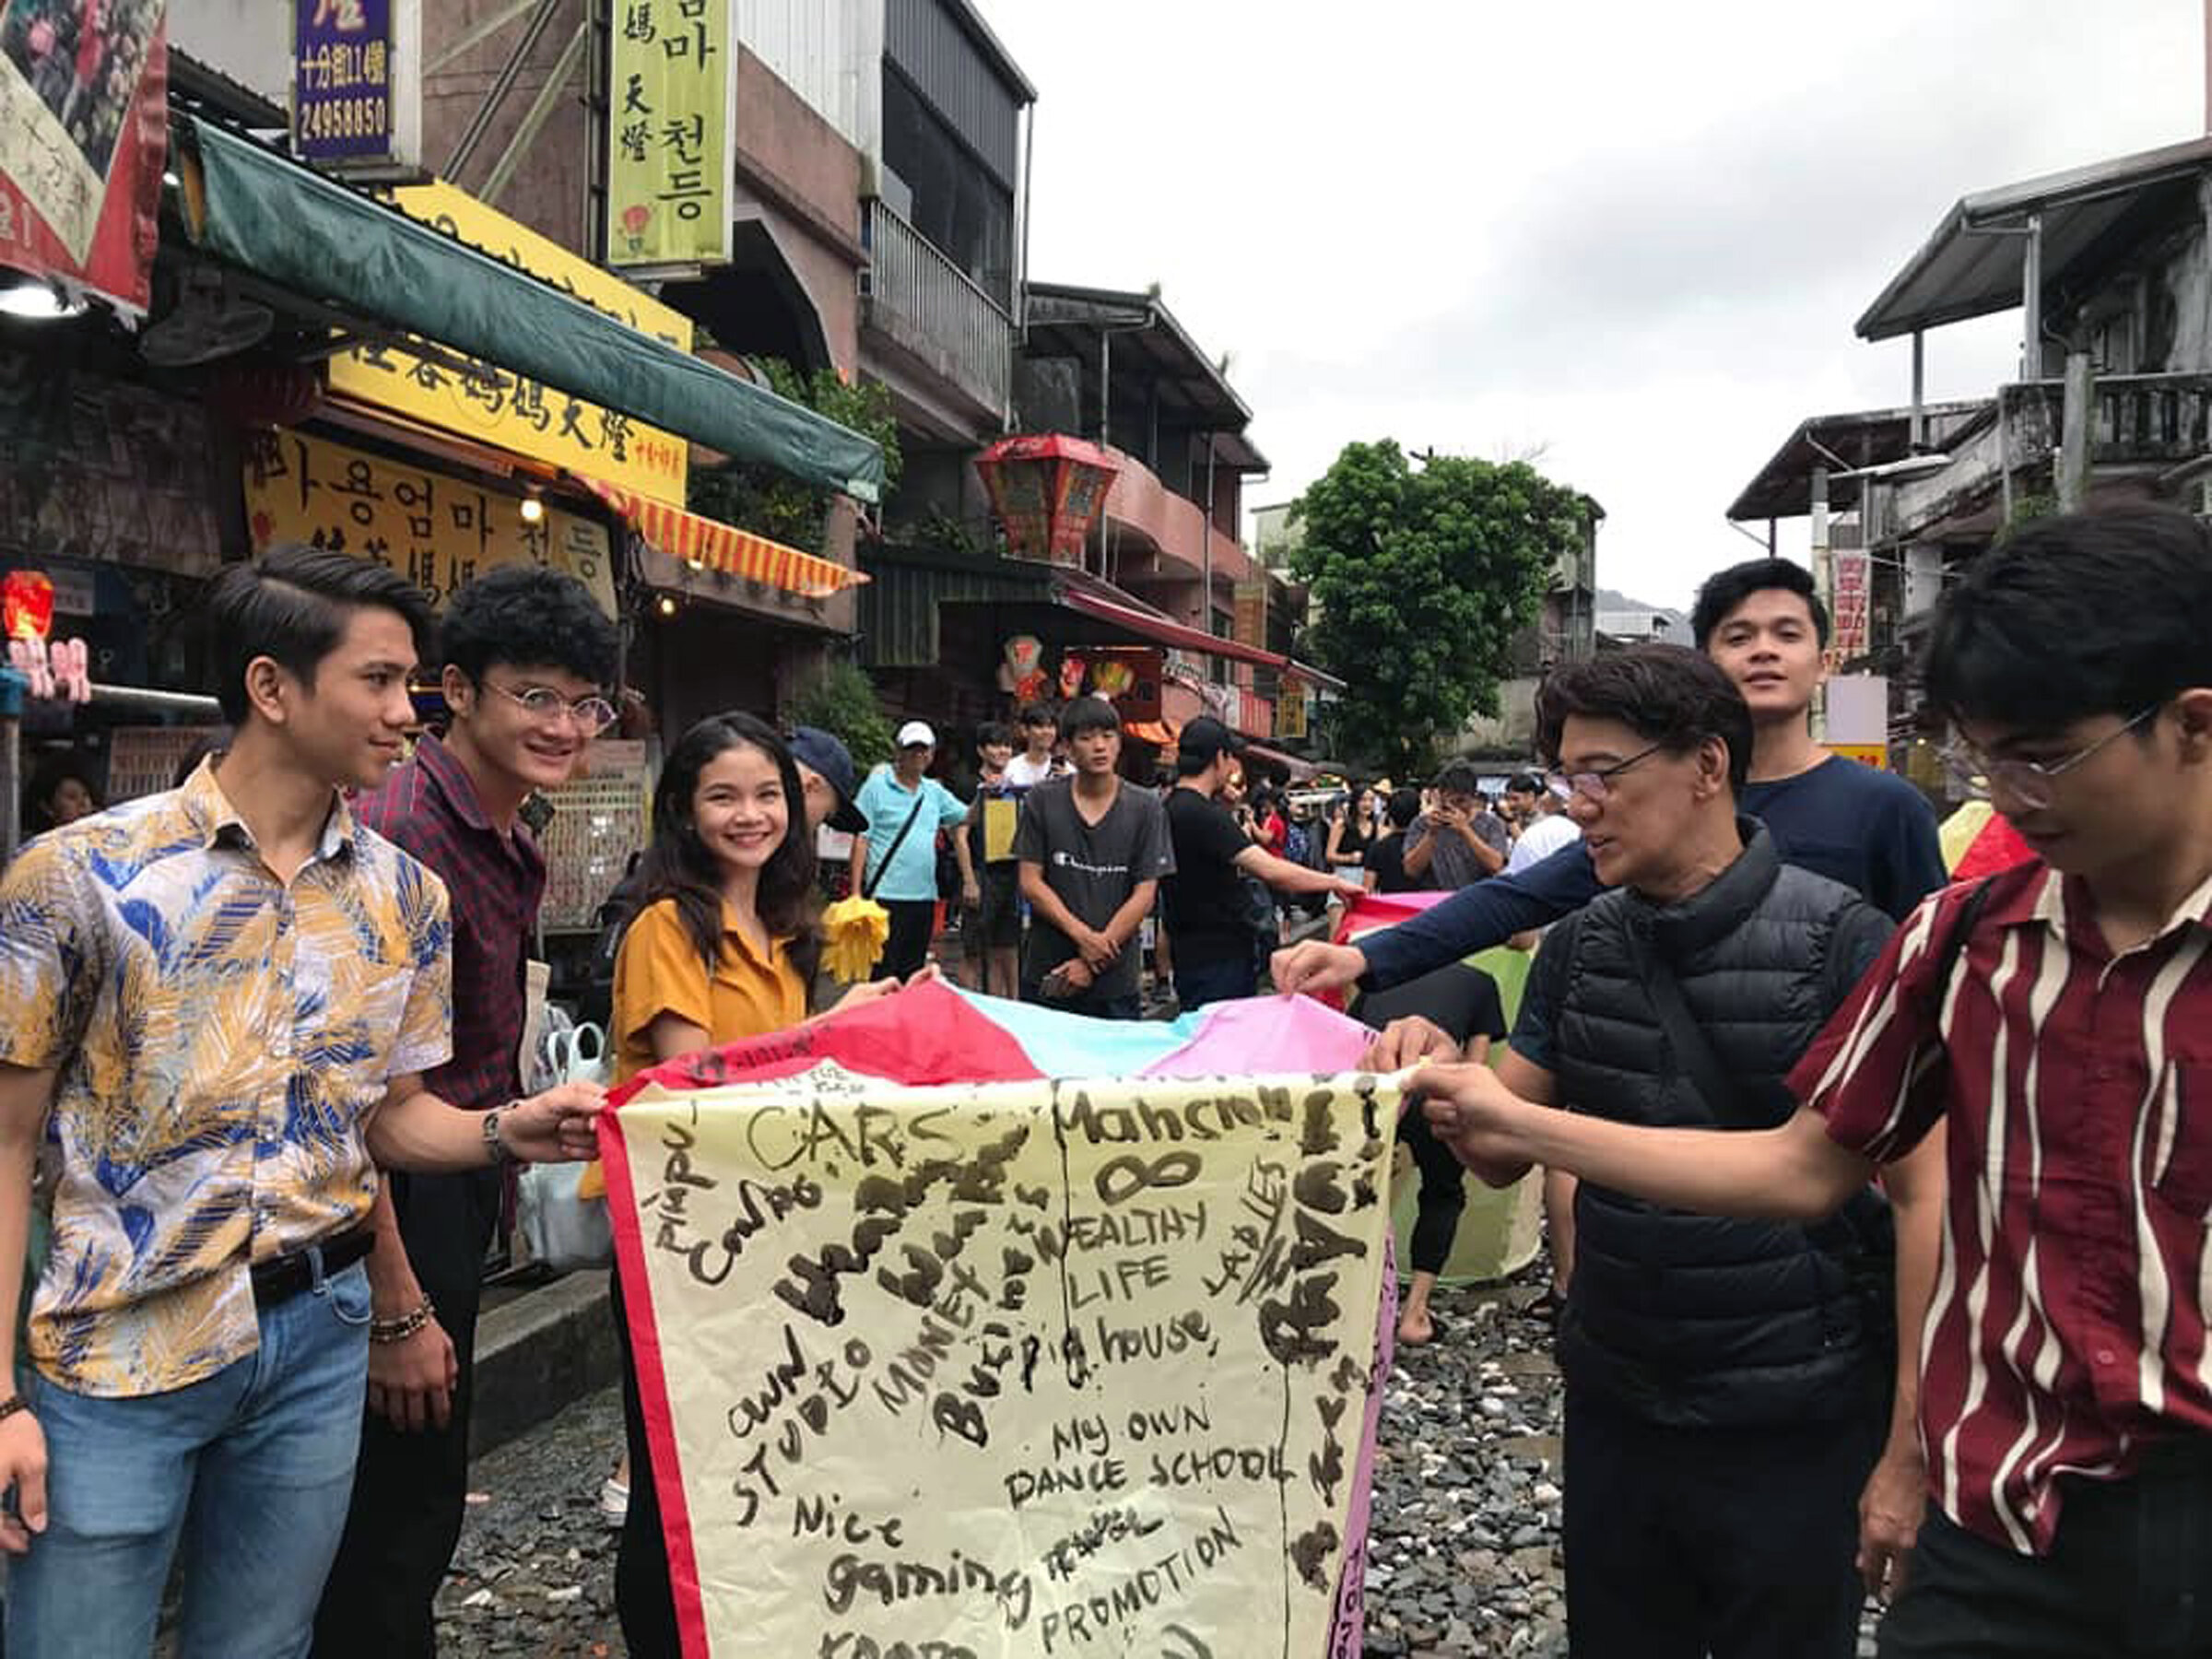 In Ping Xi, the group prepares to light their sky lantern bearing their wishes for good health and fortune.